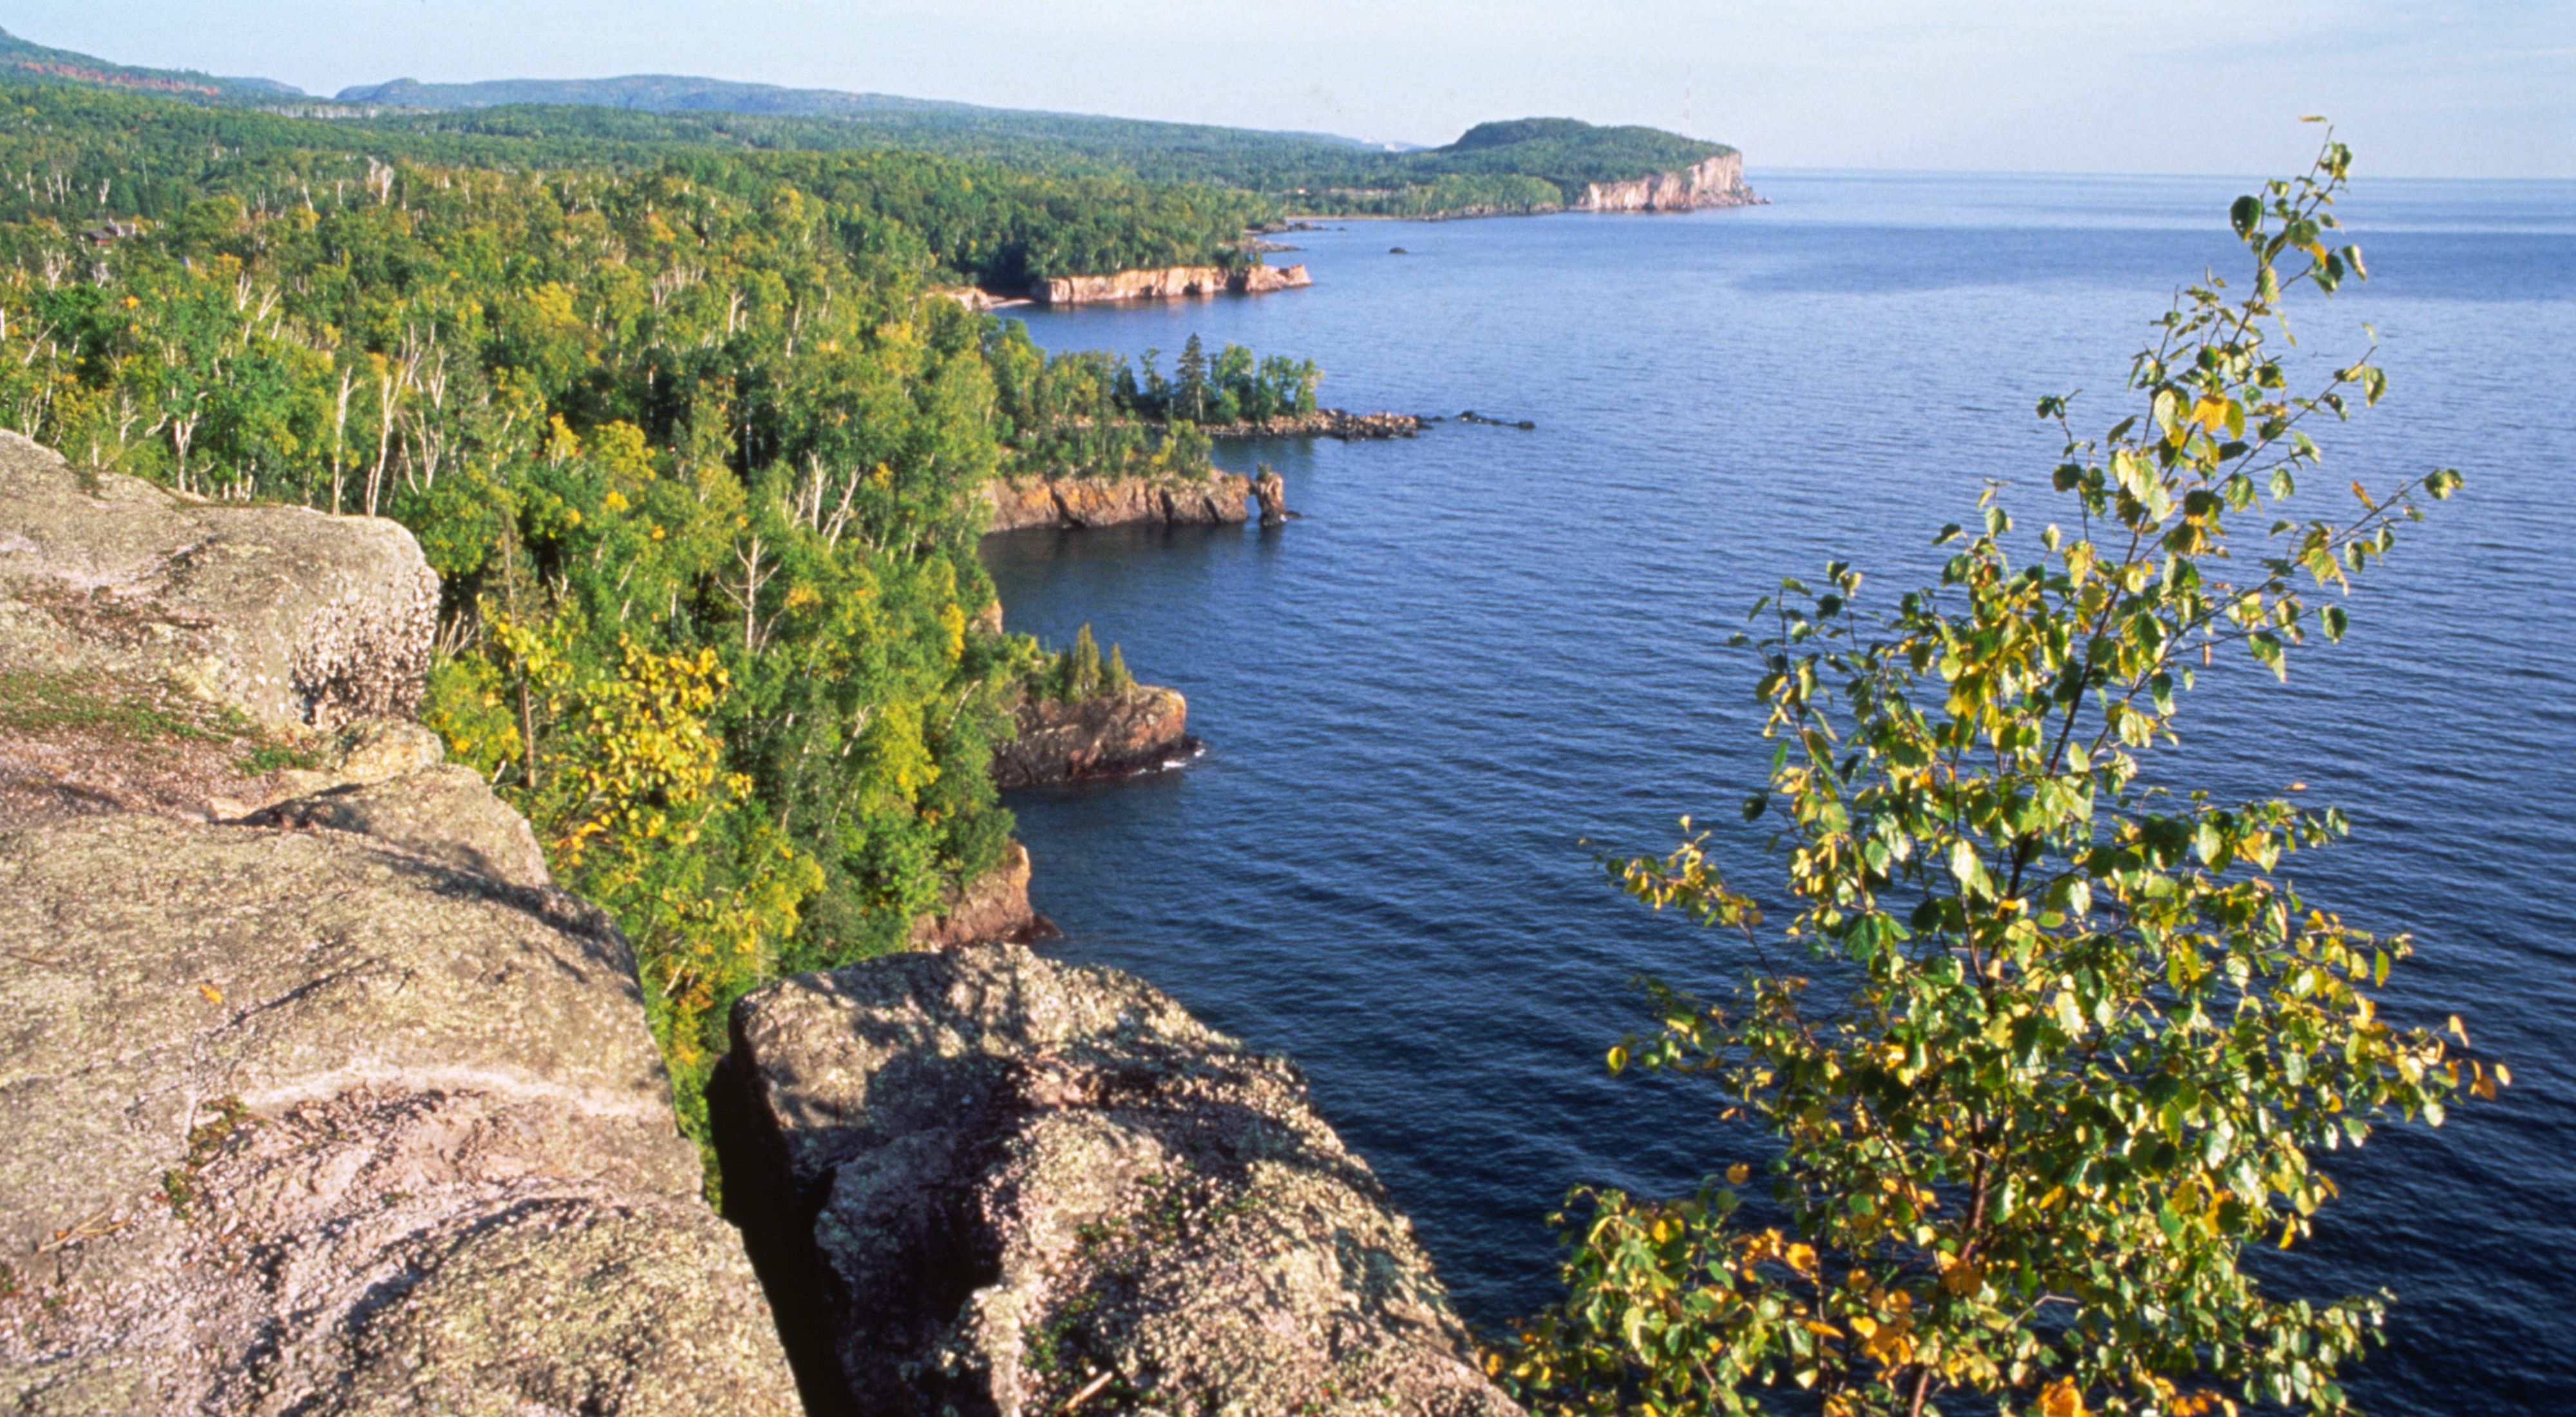 along Lake Superior in Minnesota. Shoreline like this along the Great Lakes is highly resistant to climate change.